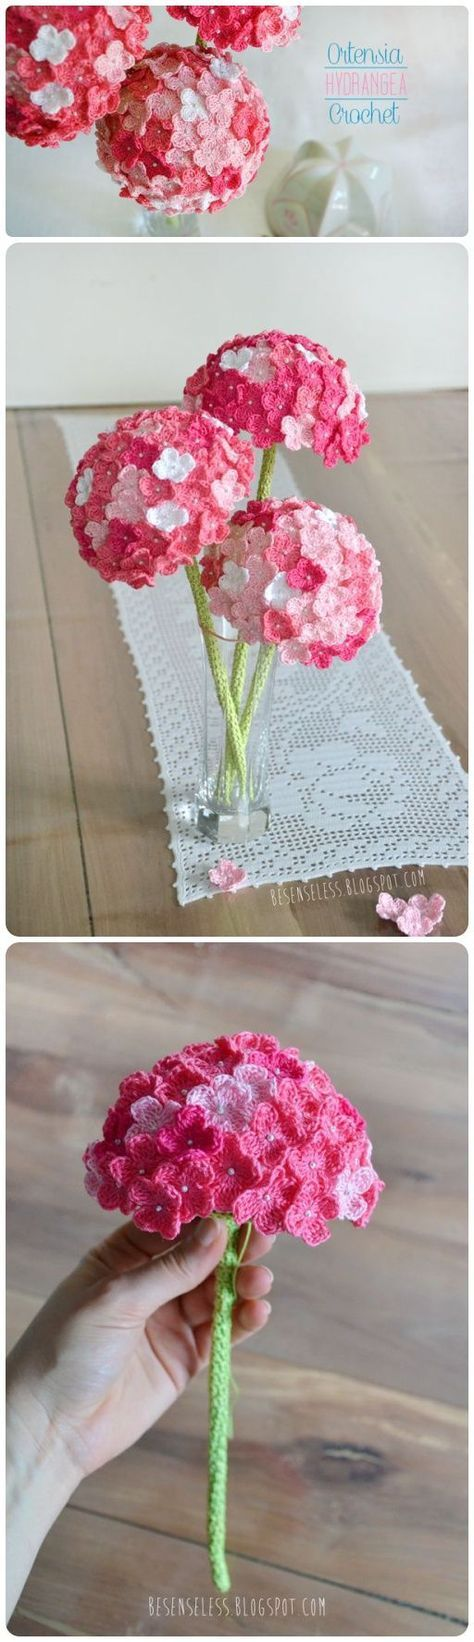 Crochet Hydrangea Flower with Free Pattern Ch 5, join with a slip stitch to make a ring. *Ch 3, 2 tr in ring, ch 3, sc in ring* repeat from * three times. Fasten off.